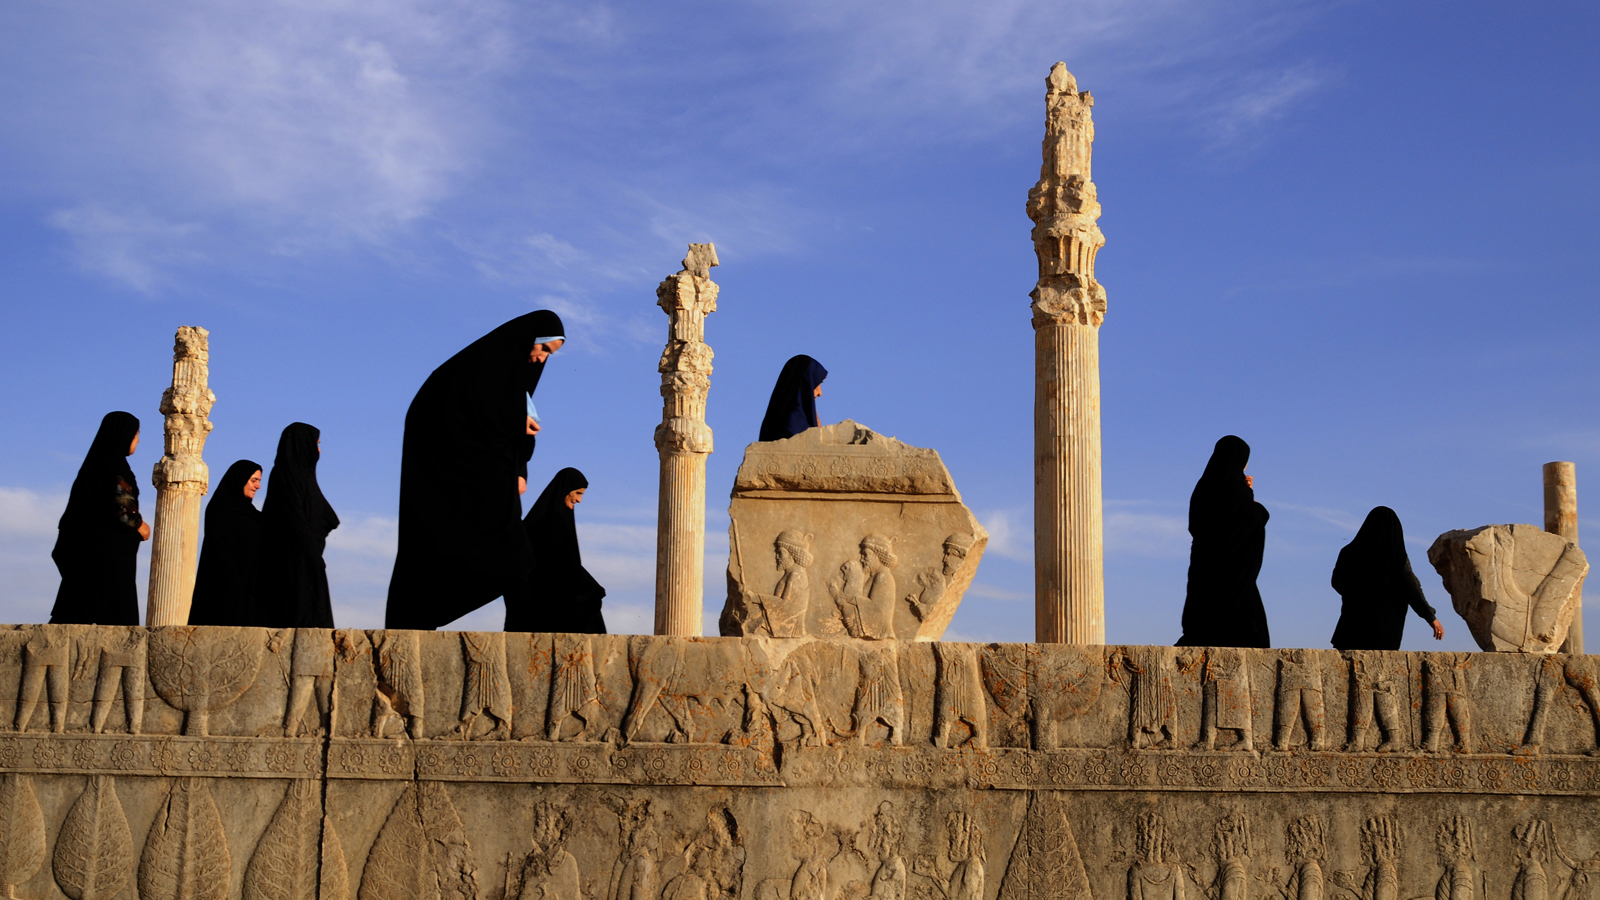 Travel to Iran for ancient architecture, breathtaking bazaars and, erm, skiing